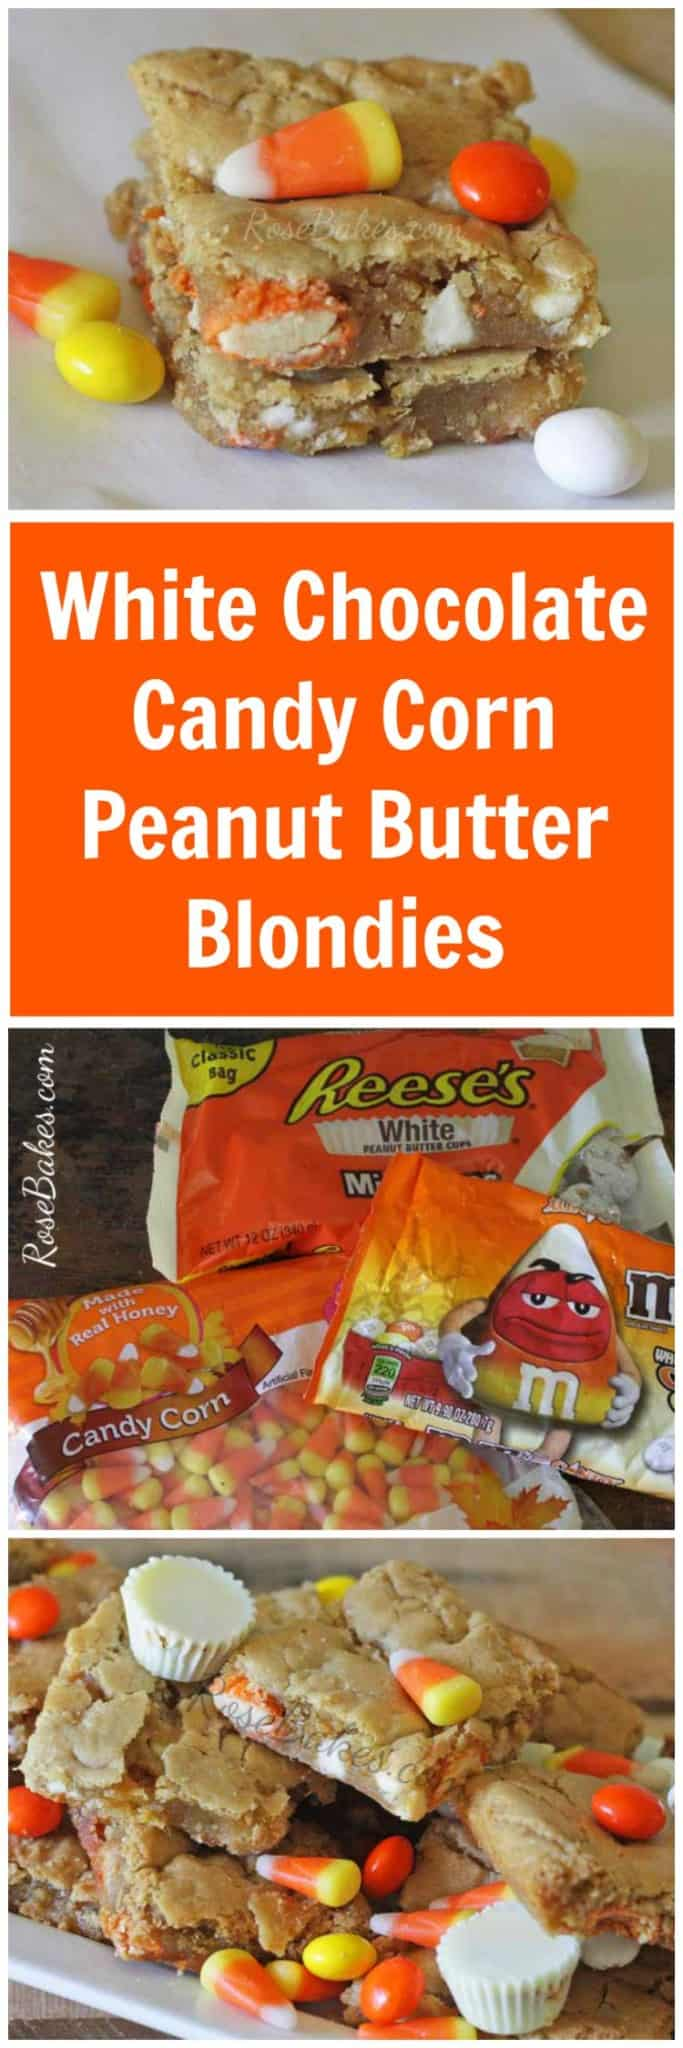 White Chocolate Candy Corn Peanut Butter Blondies - Make this Perfect Fall Dessert